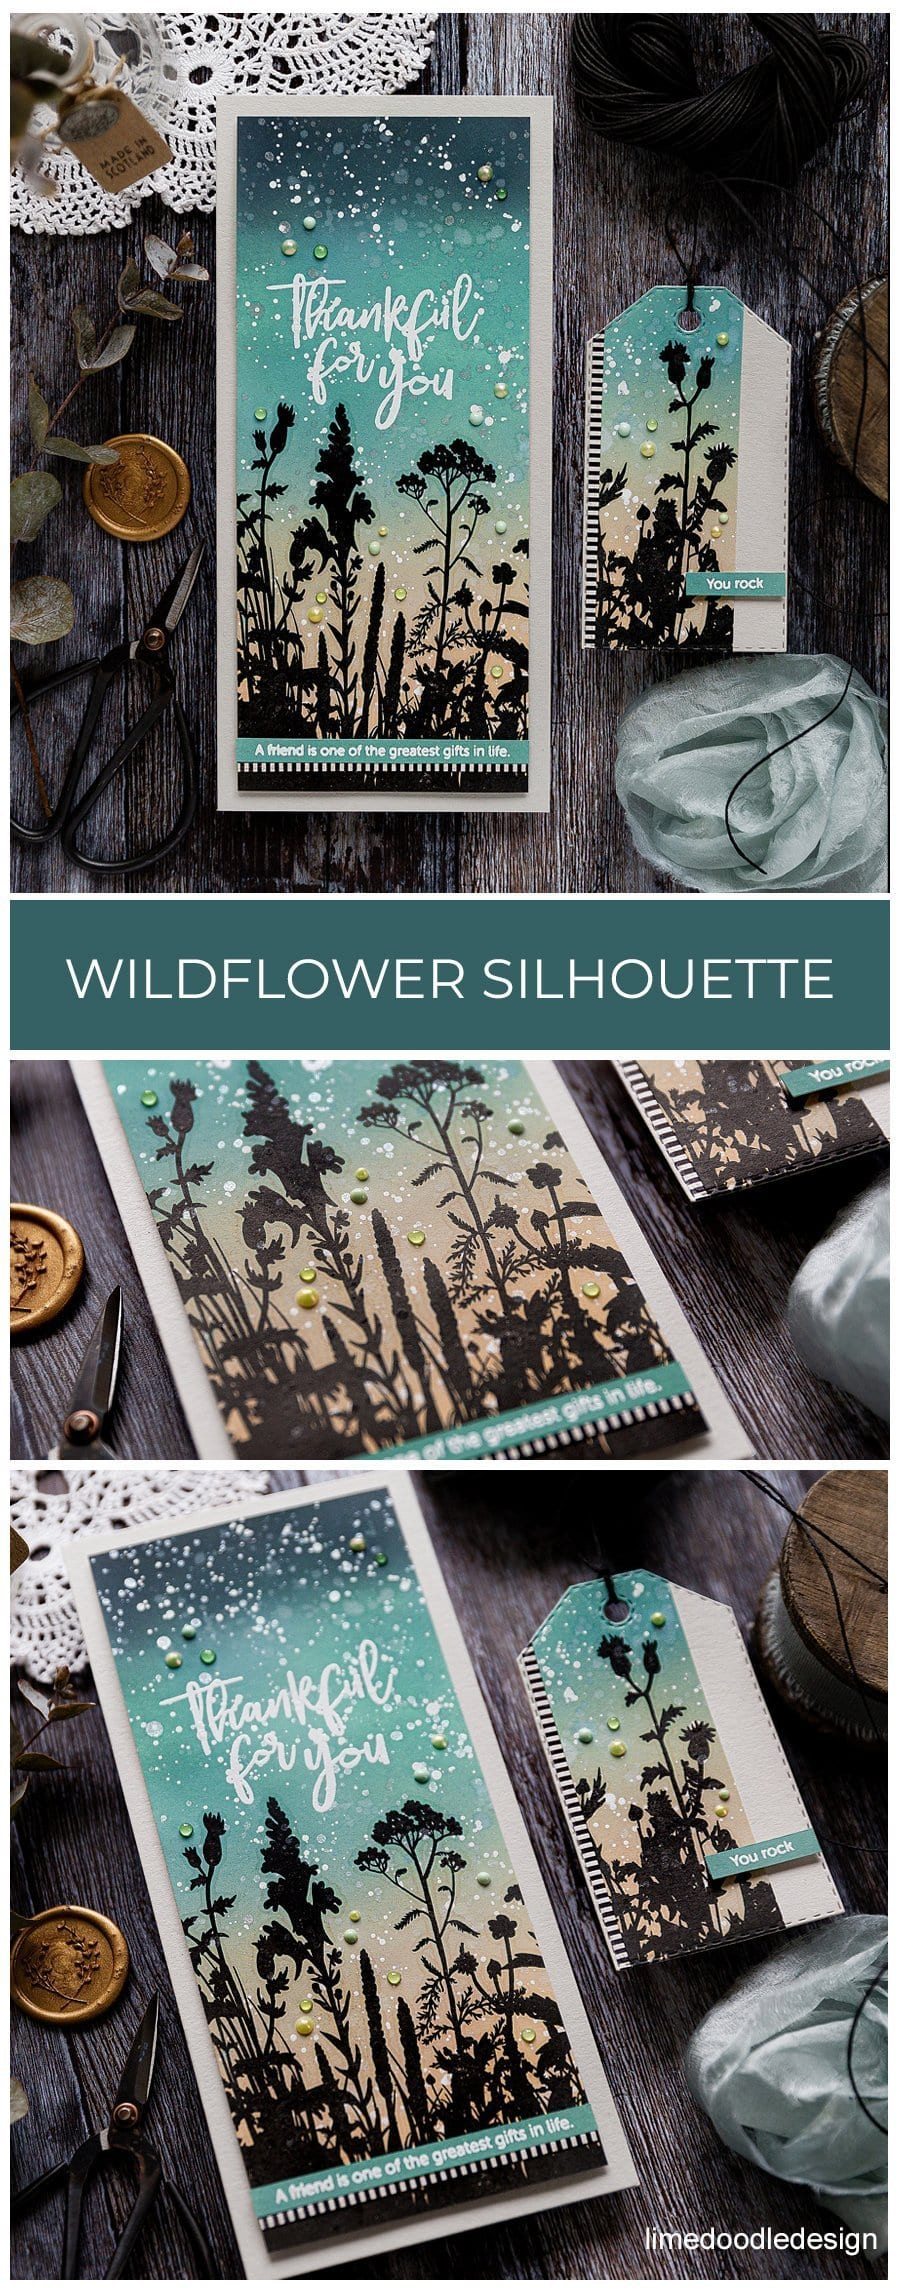 Wildflowers silhouette over Distress Oxide ink blended background. Handmade friendship card by Debby Hughes using supplies from Simon Says Stamp. Find out more here: https://limedoodledesign.com/2019/06/wildflower-silhouette-blog-hop/